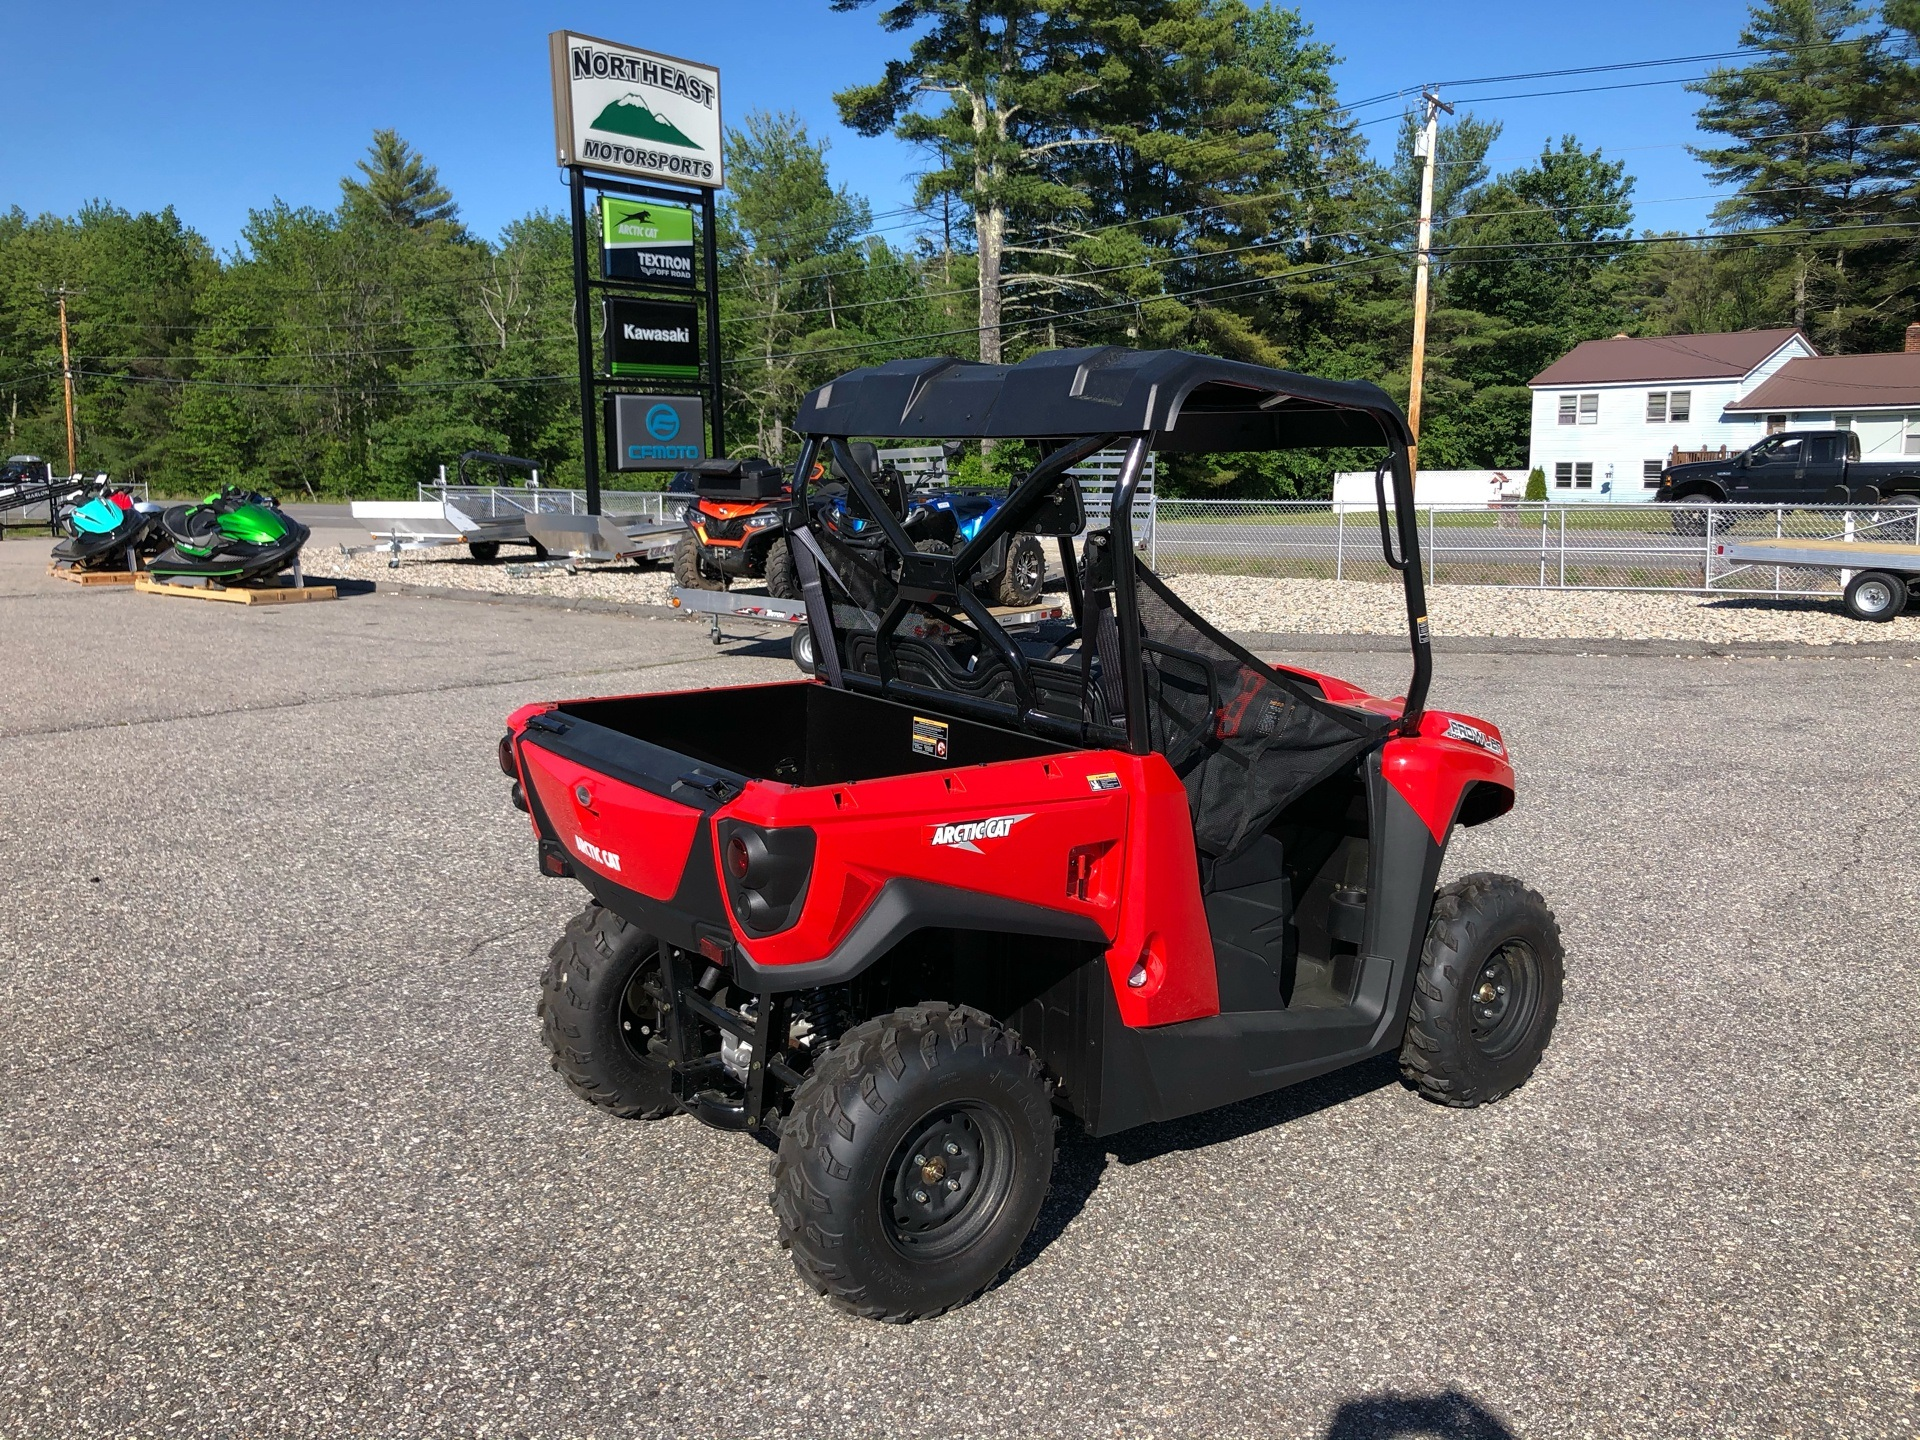 2020 Arctic Cat Prowler 500 in Lebanon, Maine - Photo 8